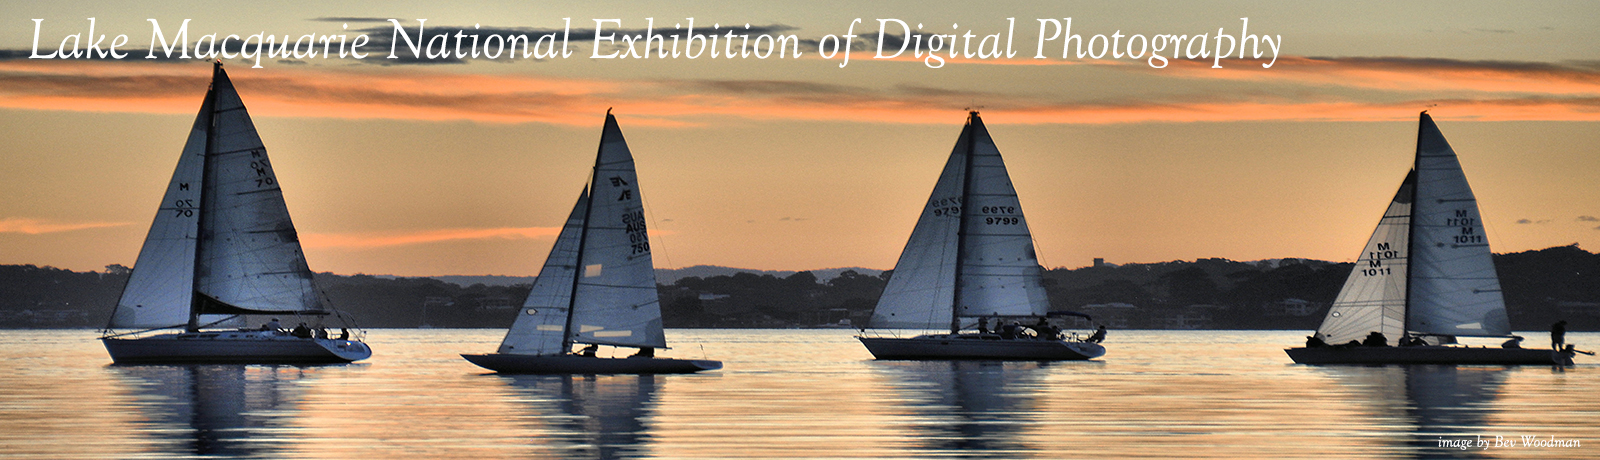 Lake Macquarie National  Exhibition of Digital Photography